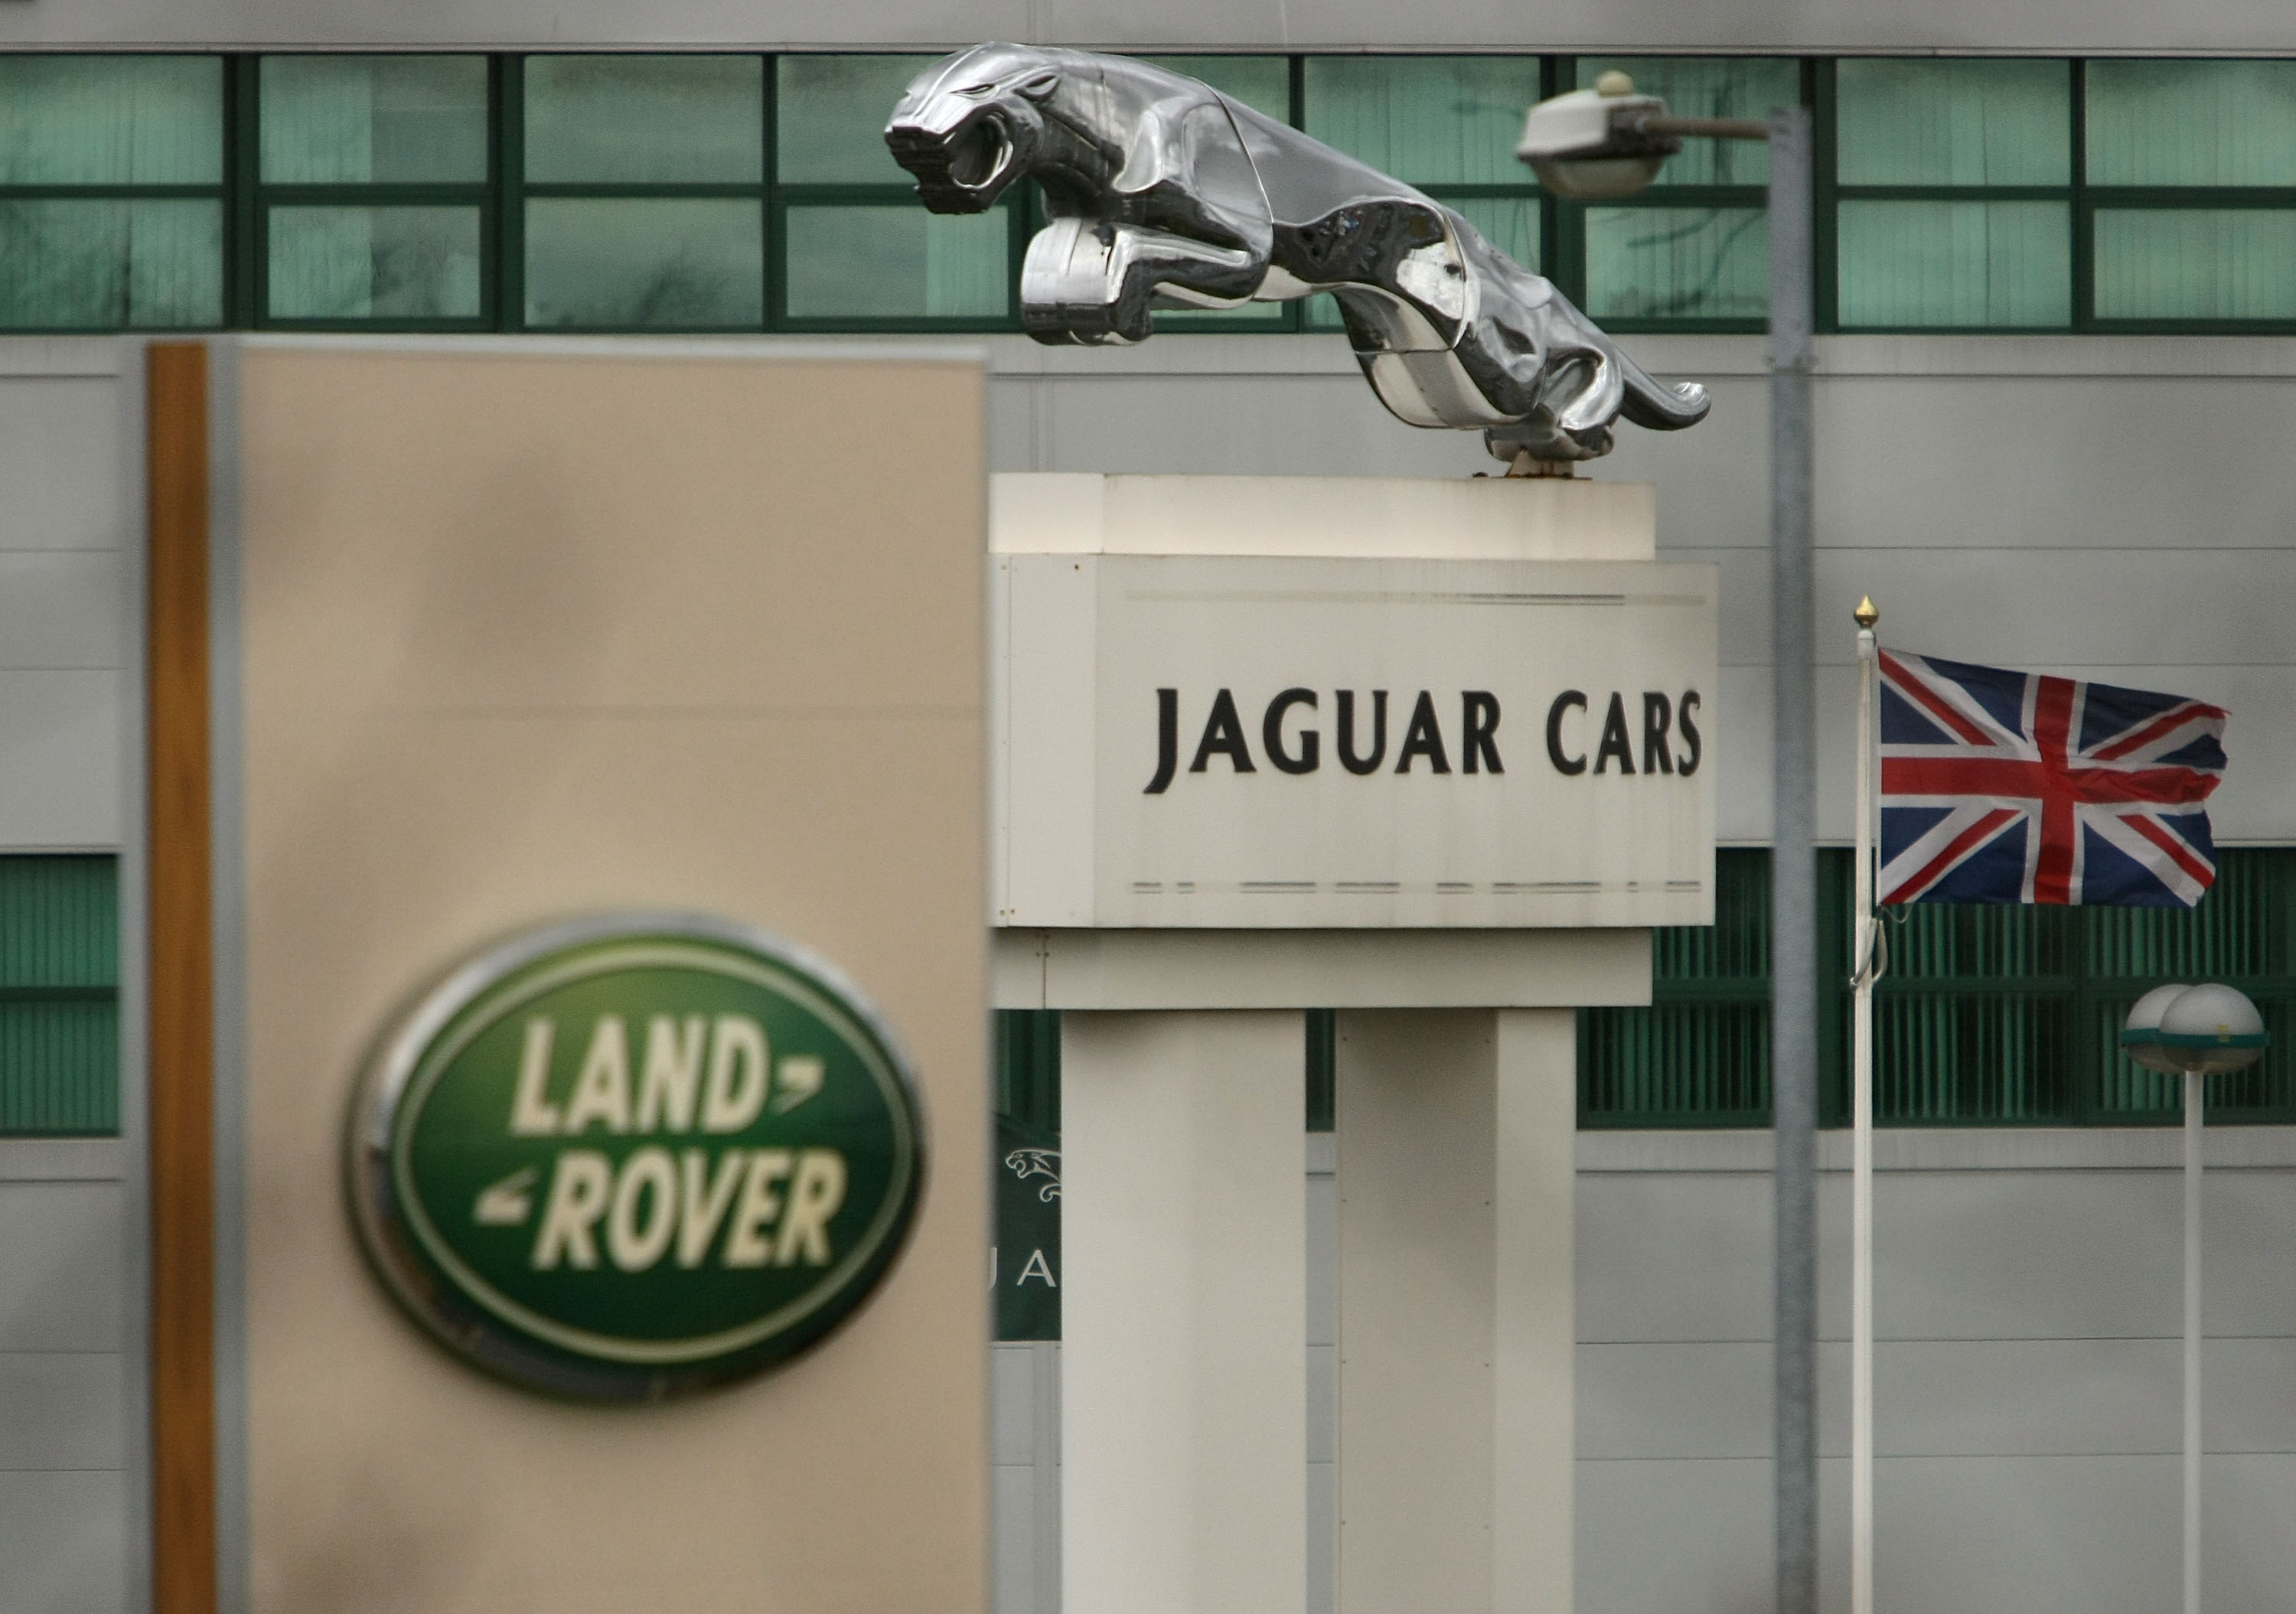 LIVERPOOL, UNITED KINGDOM - MARCH 26:  The Halewood operations site of Jaguar and Land Rover in Merseyside, Liverpool, England on 18 March, 2008. Parent owner Ford is due to announce today that it is selling off the two luxury brands to Indian car manufacturer Tata Motors in a deal speculated to be worth in the region of GBP 1 billion. (Photo by Christopher Furlong/Getty Images)